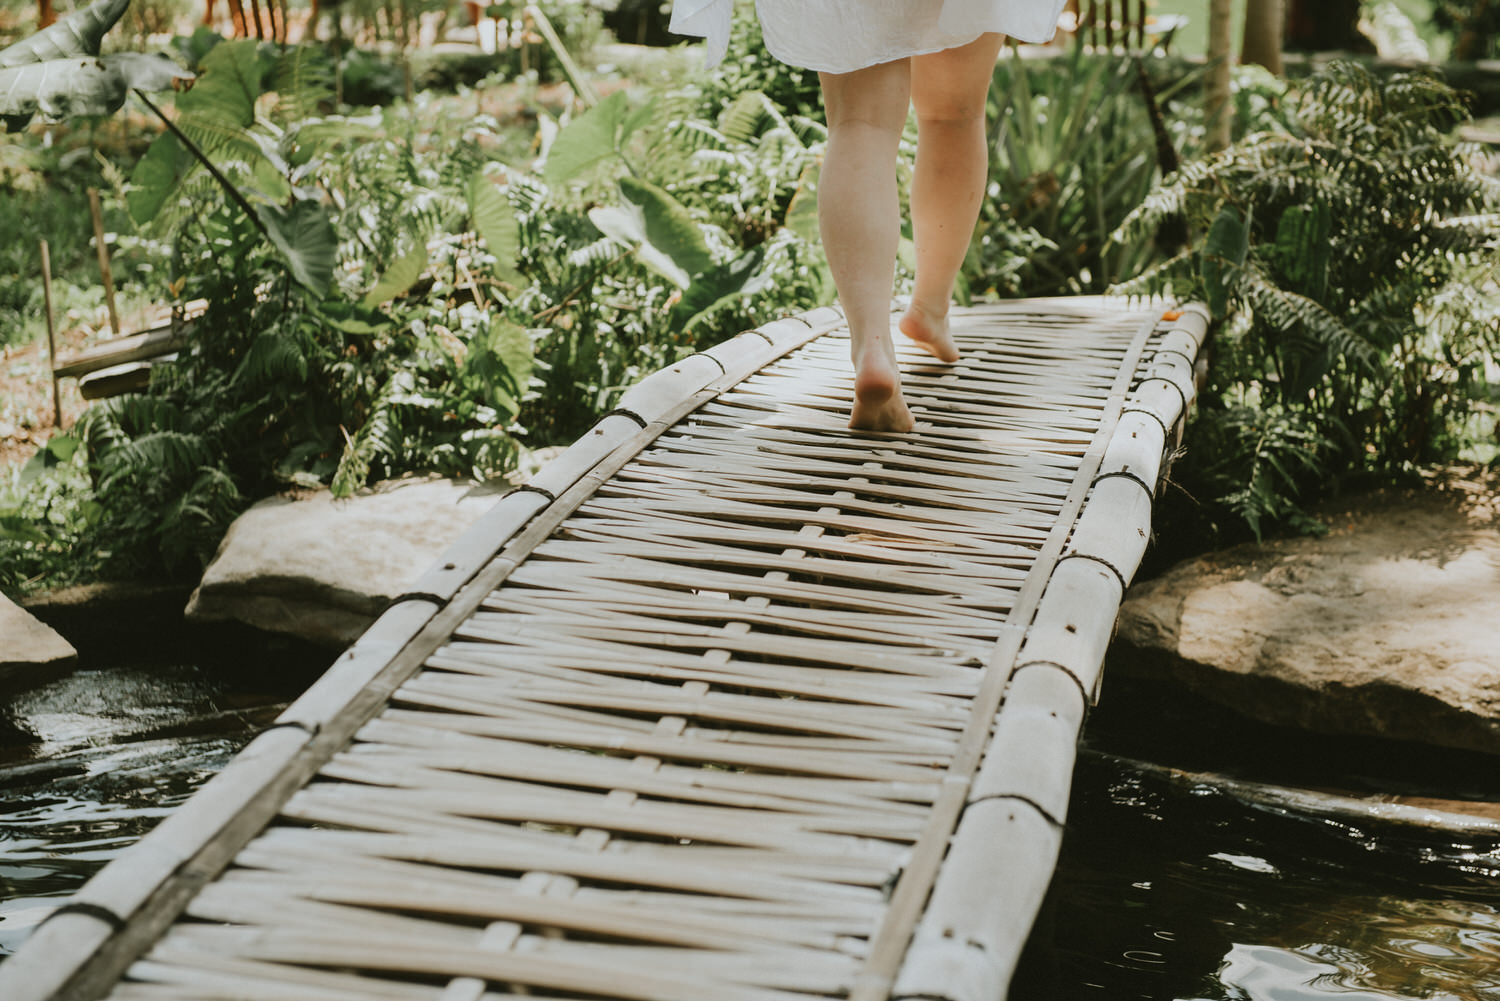 bali-wedding-ubud-wedding-wedding-destination-diktatphotography-kadek-artayasa-elaine-and-glenn-009